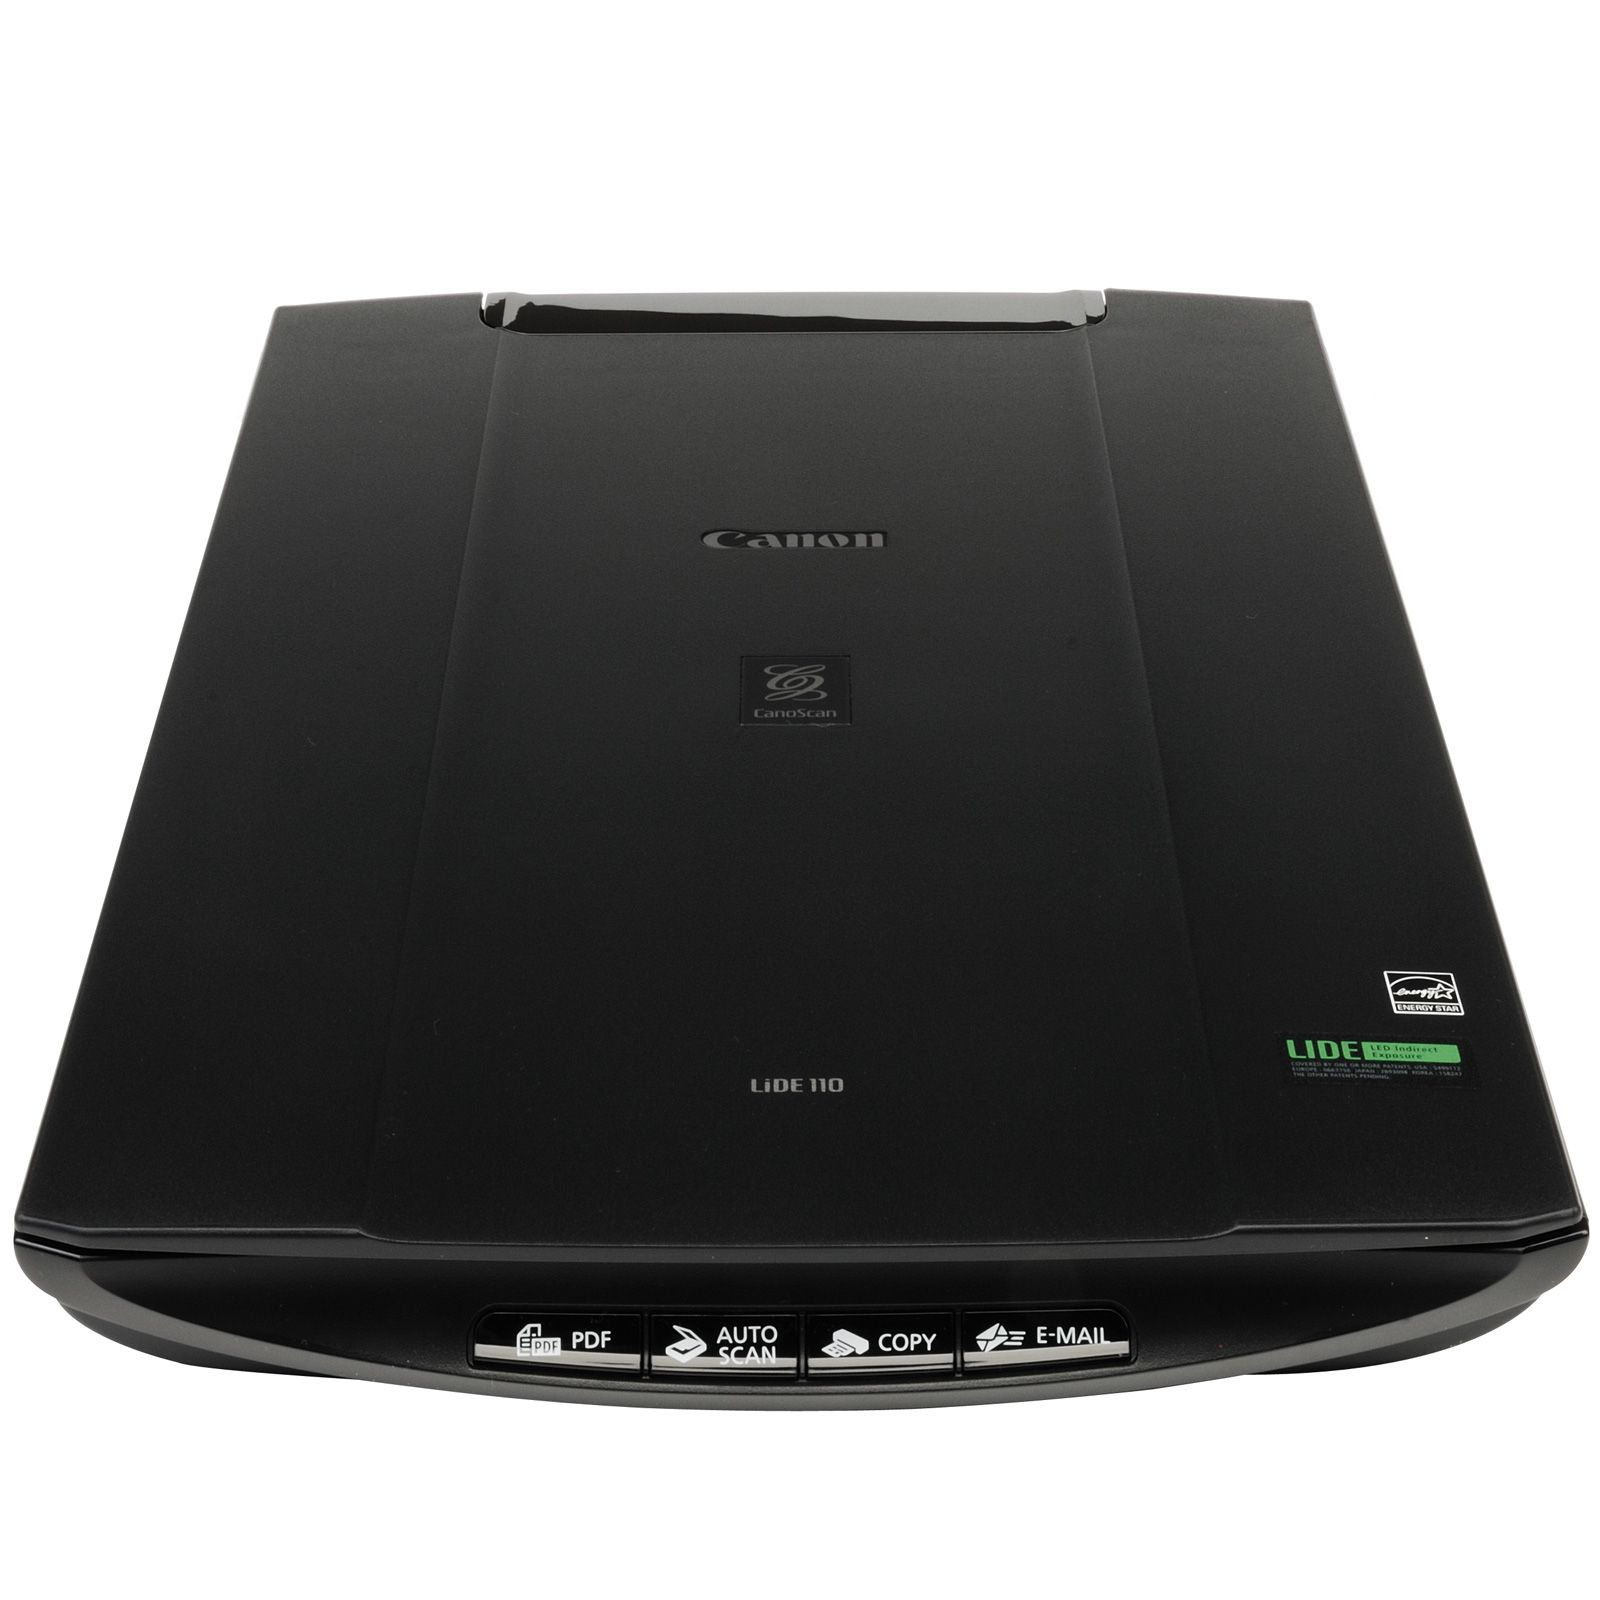 Canon CanoScan Lide 110 scanner Driver Download for Windows